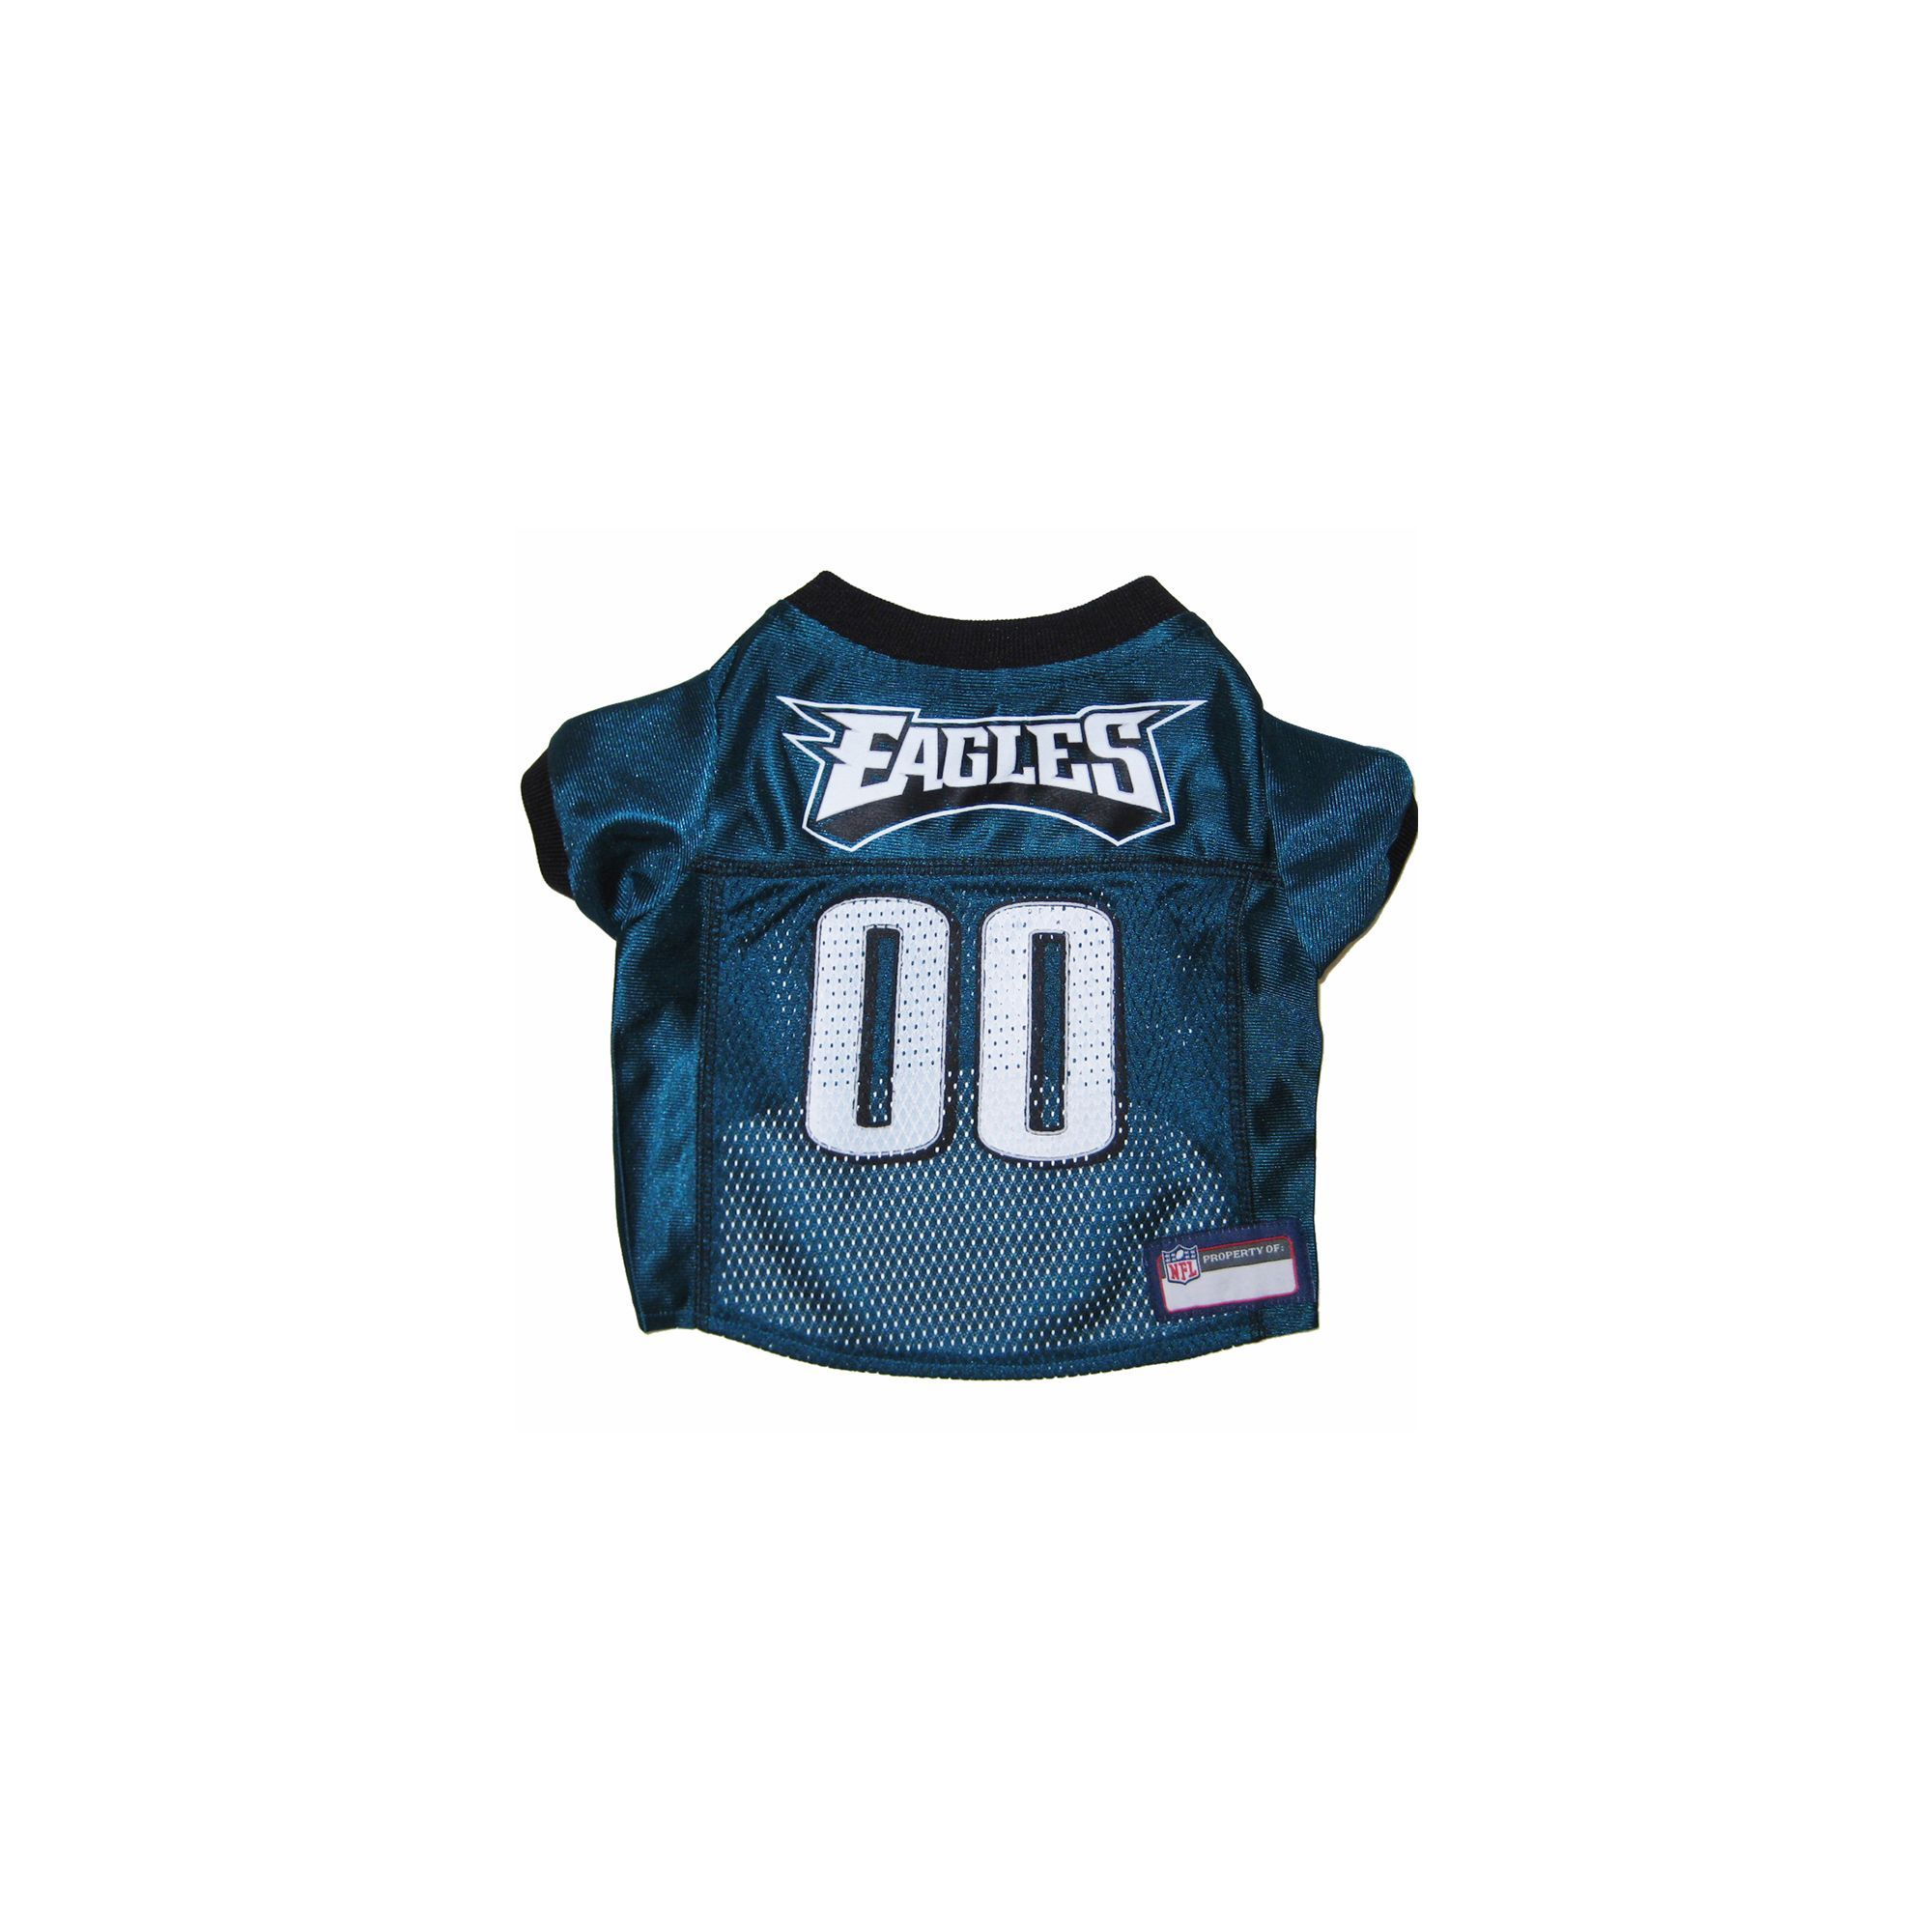 02e69fbde87 Philadelphia Eagles NFL Jersey size: 2X Large, Dark Green, Pets First